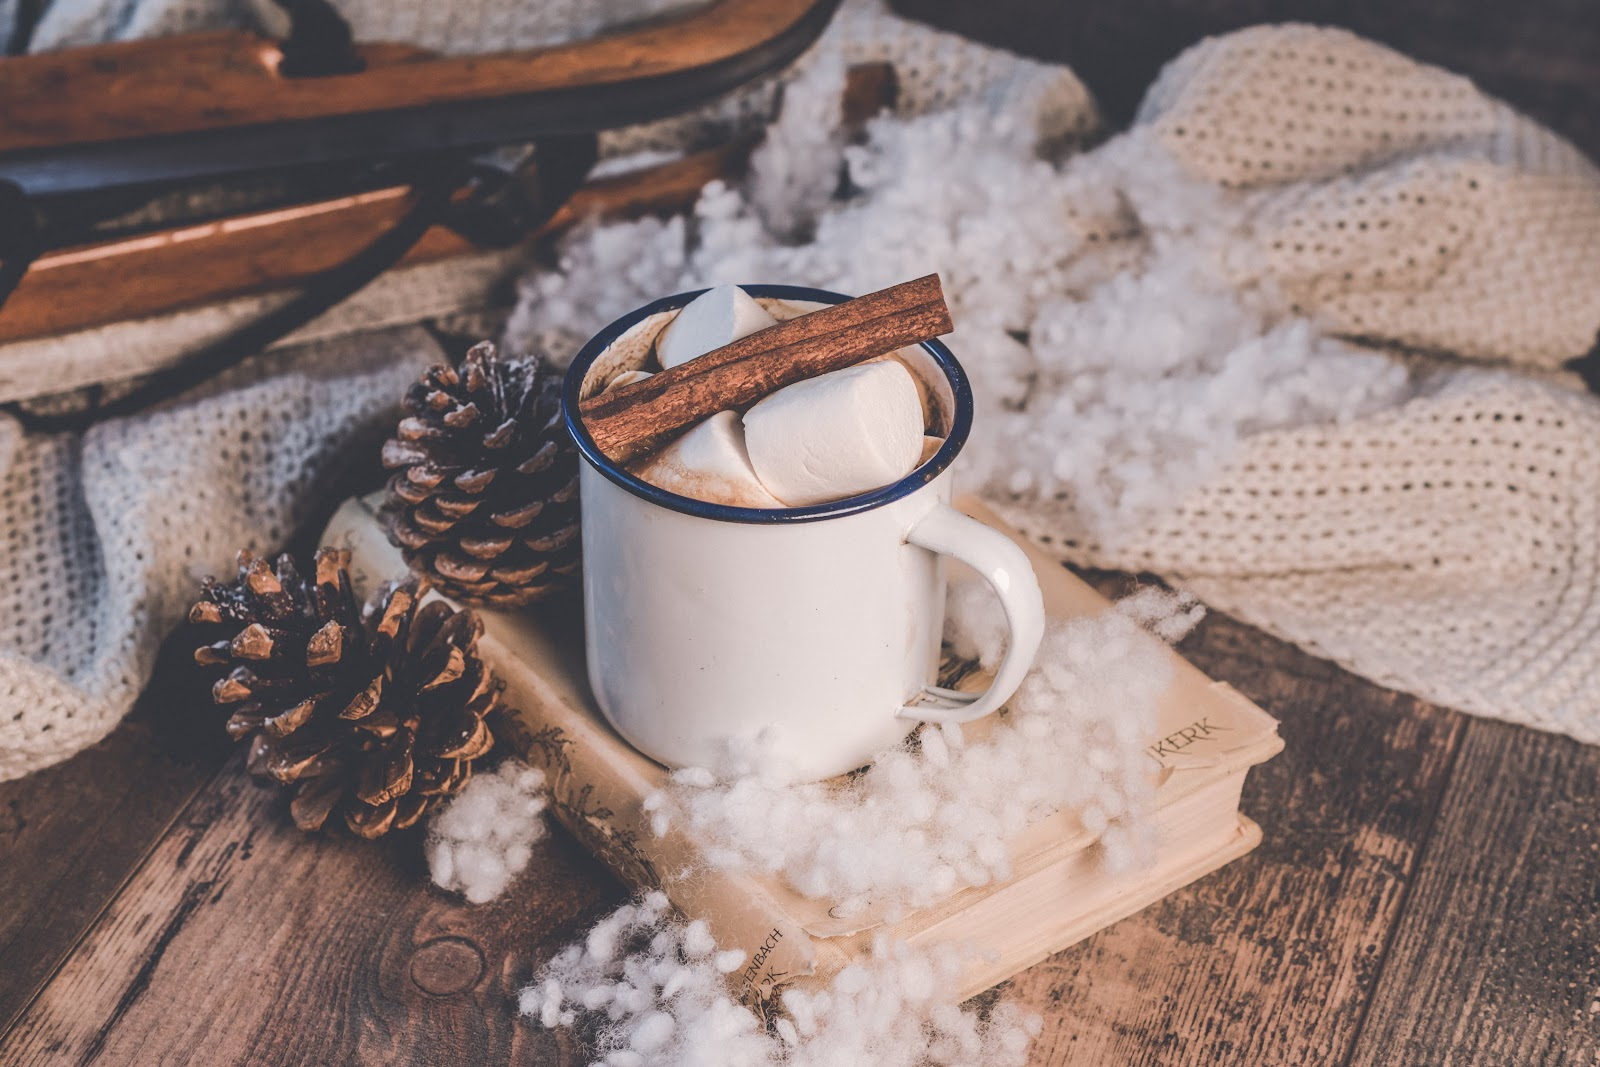 White Ceramic Mug with marshmallows and a cinnamon stick inside.